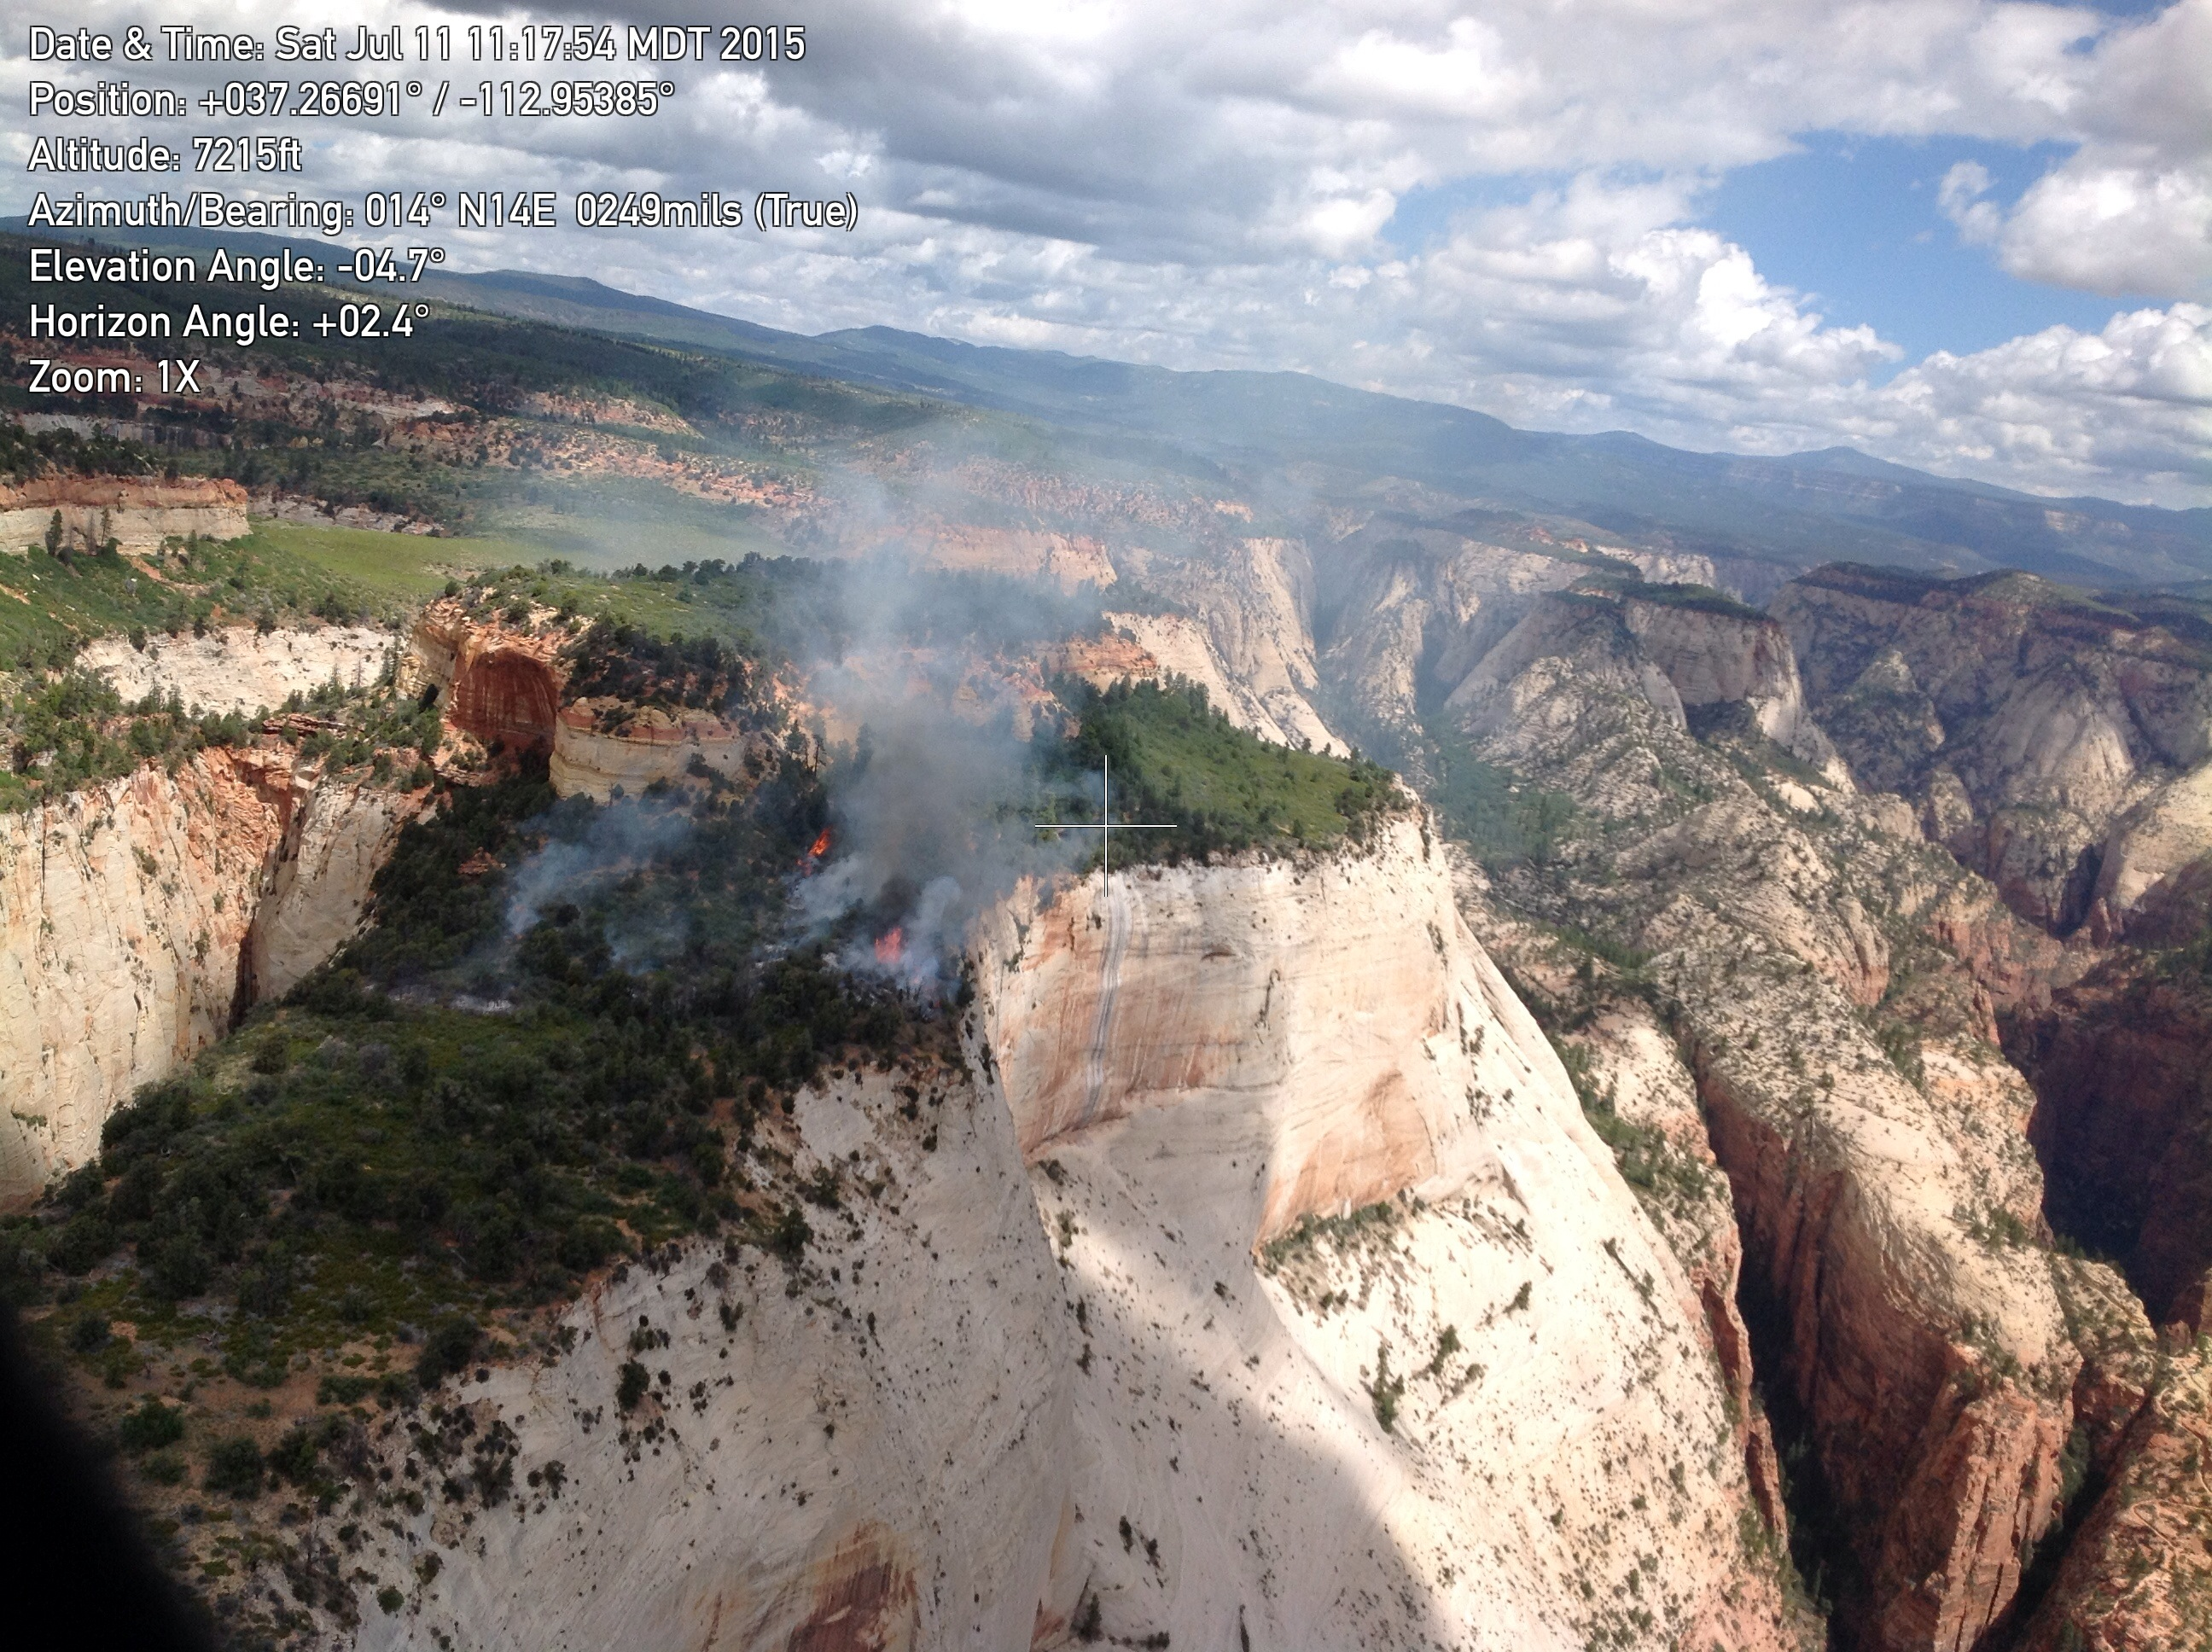 Cathedral Fire, started by lightning on July 9 in Zion National Park, Utah, July 11, 2015 | Photo courtesy of Zion National Park, St. George News